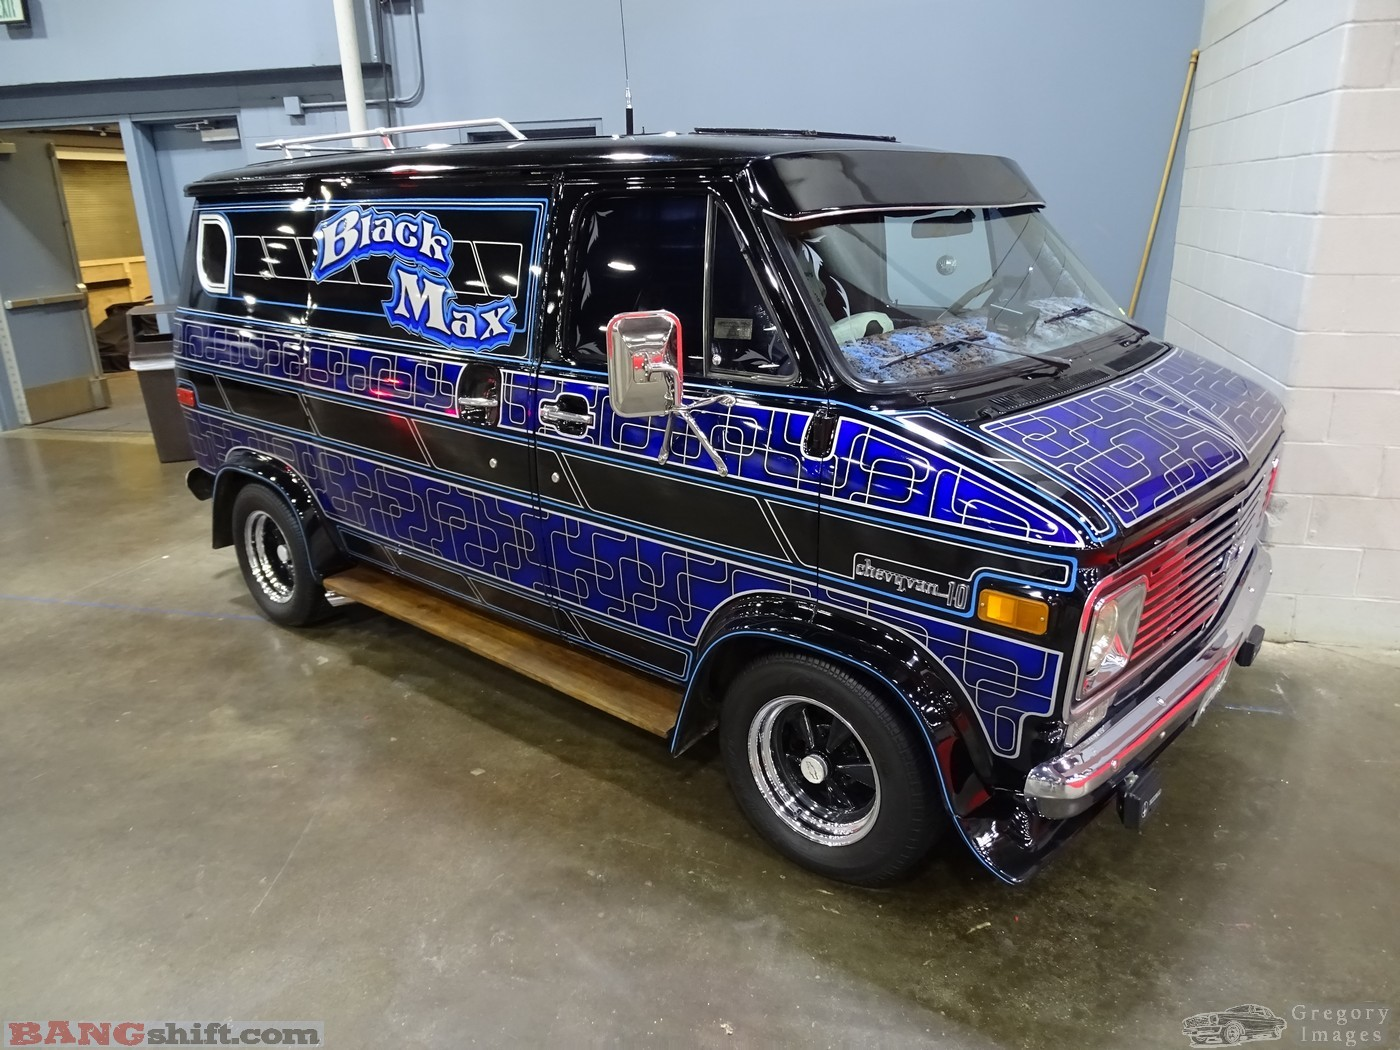 2019 Cavalcade of Customs Photo Coverage: Hot Rods, Vans, and More From The Show!